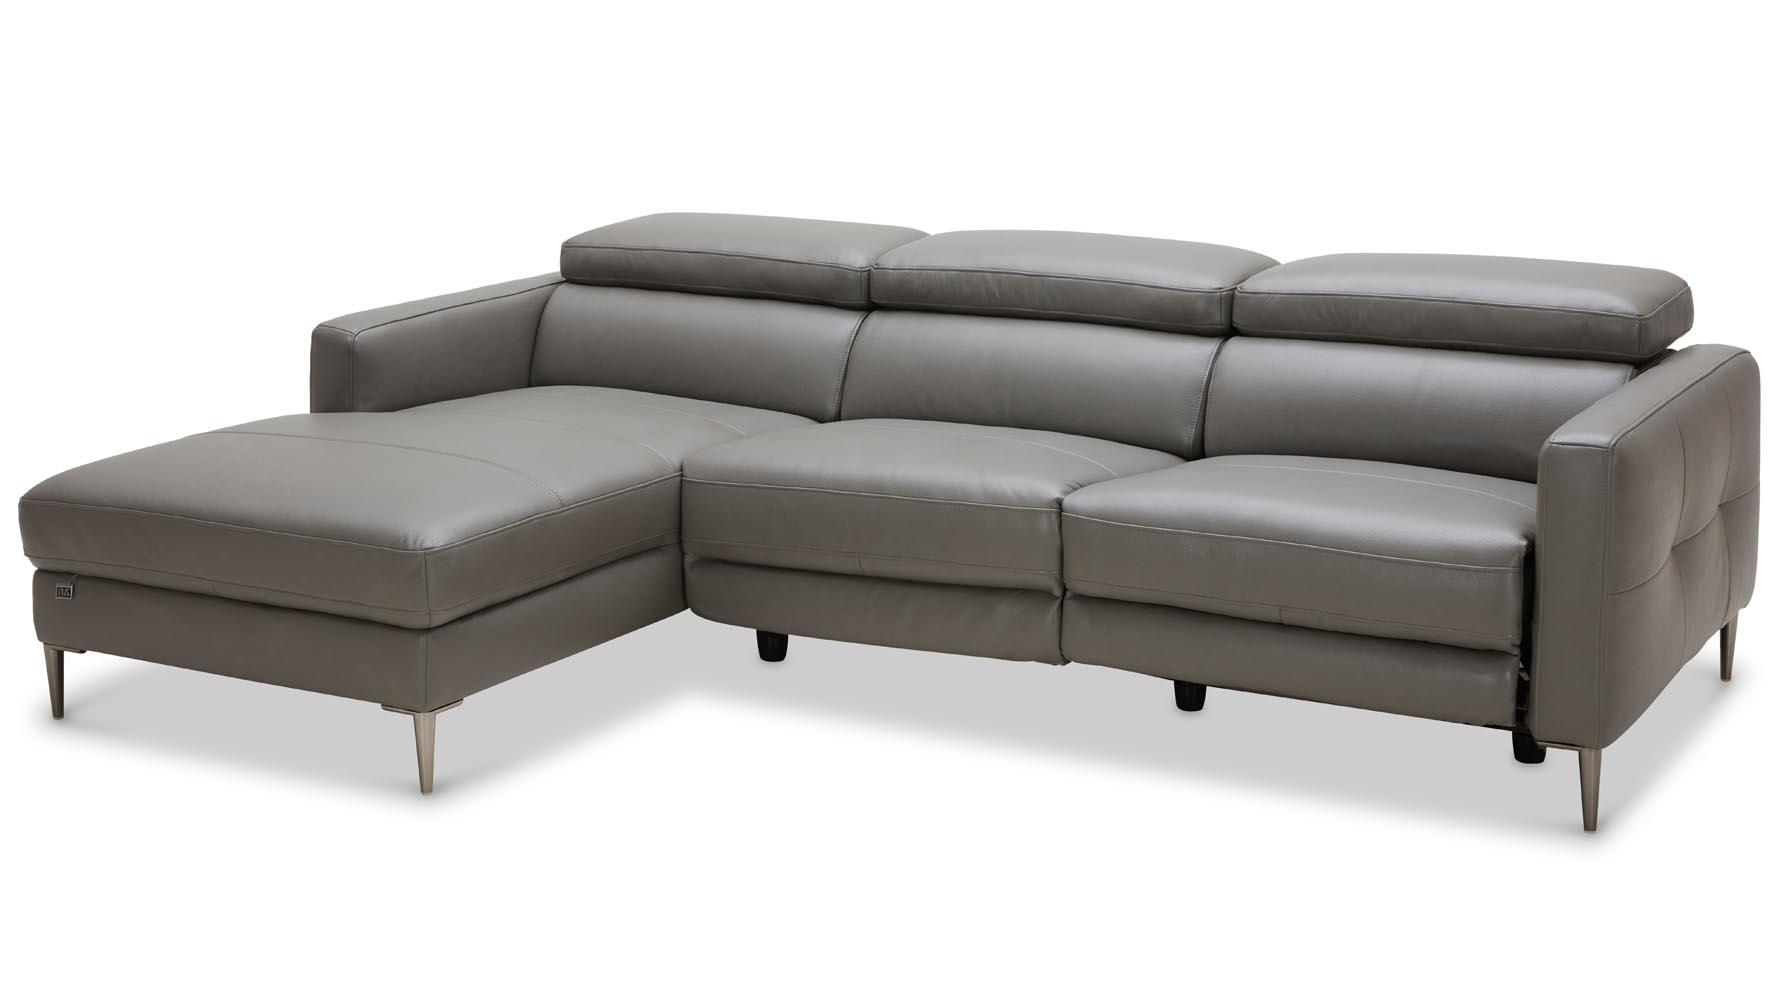 Modern Grey Leather Reno Sectional With Power Recliner Seat | Zuri For Modern Reclining Sectional (Image 12 of 20)